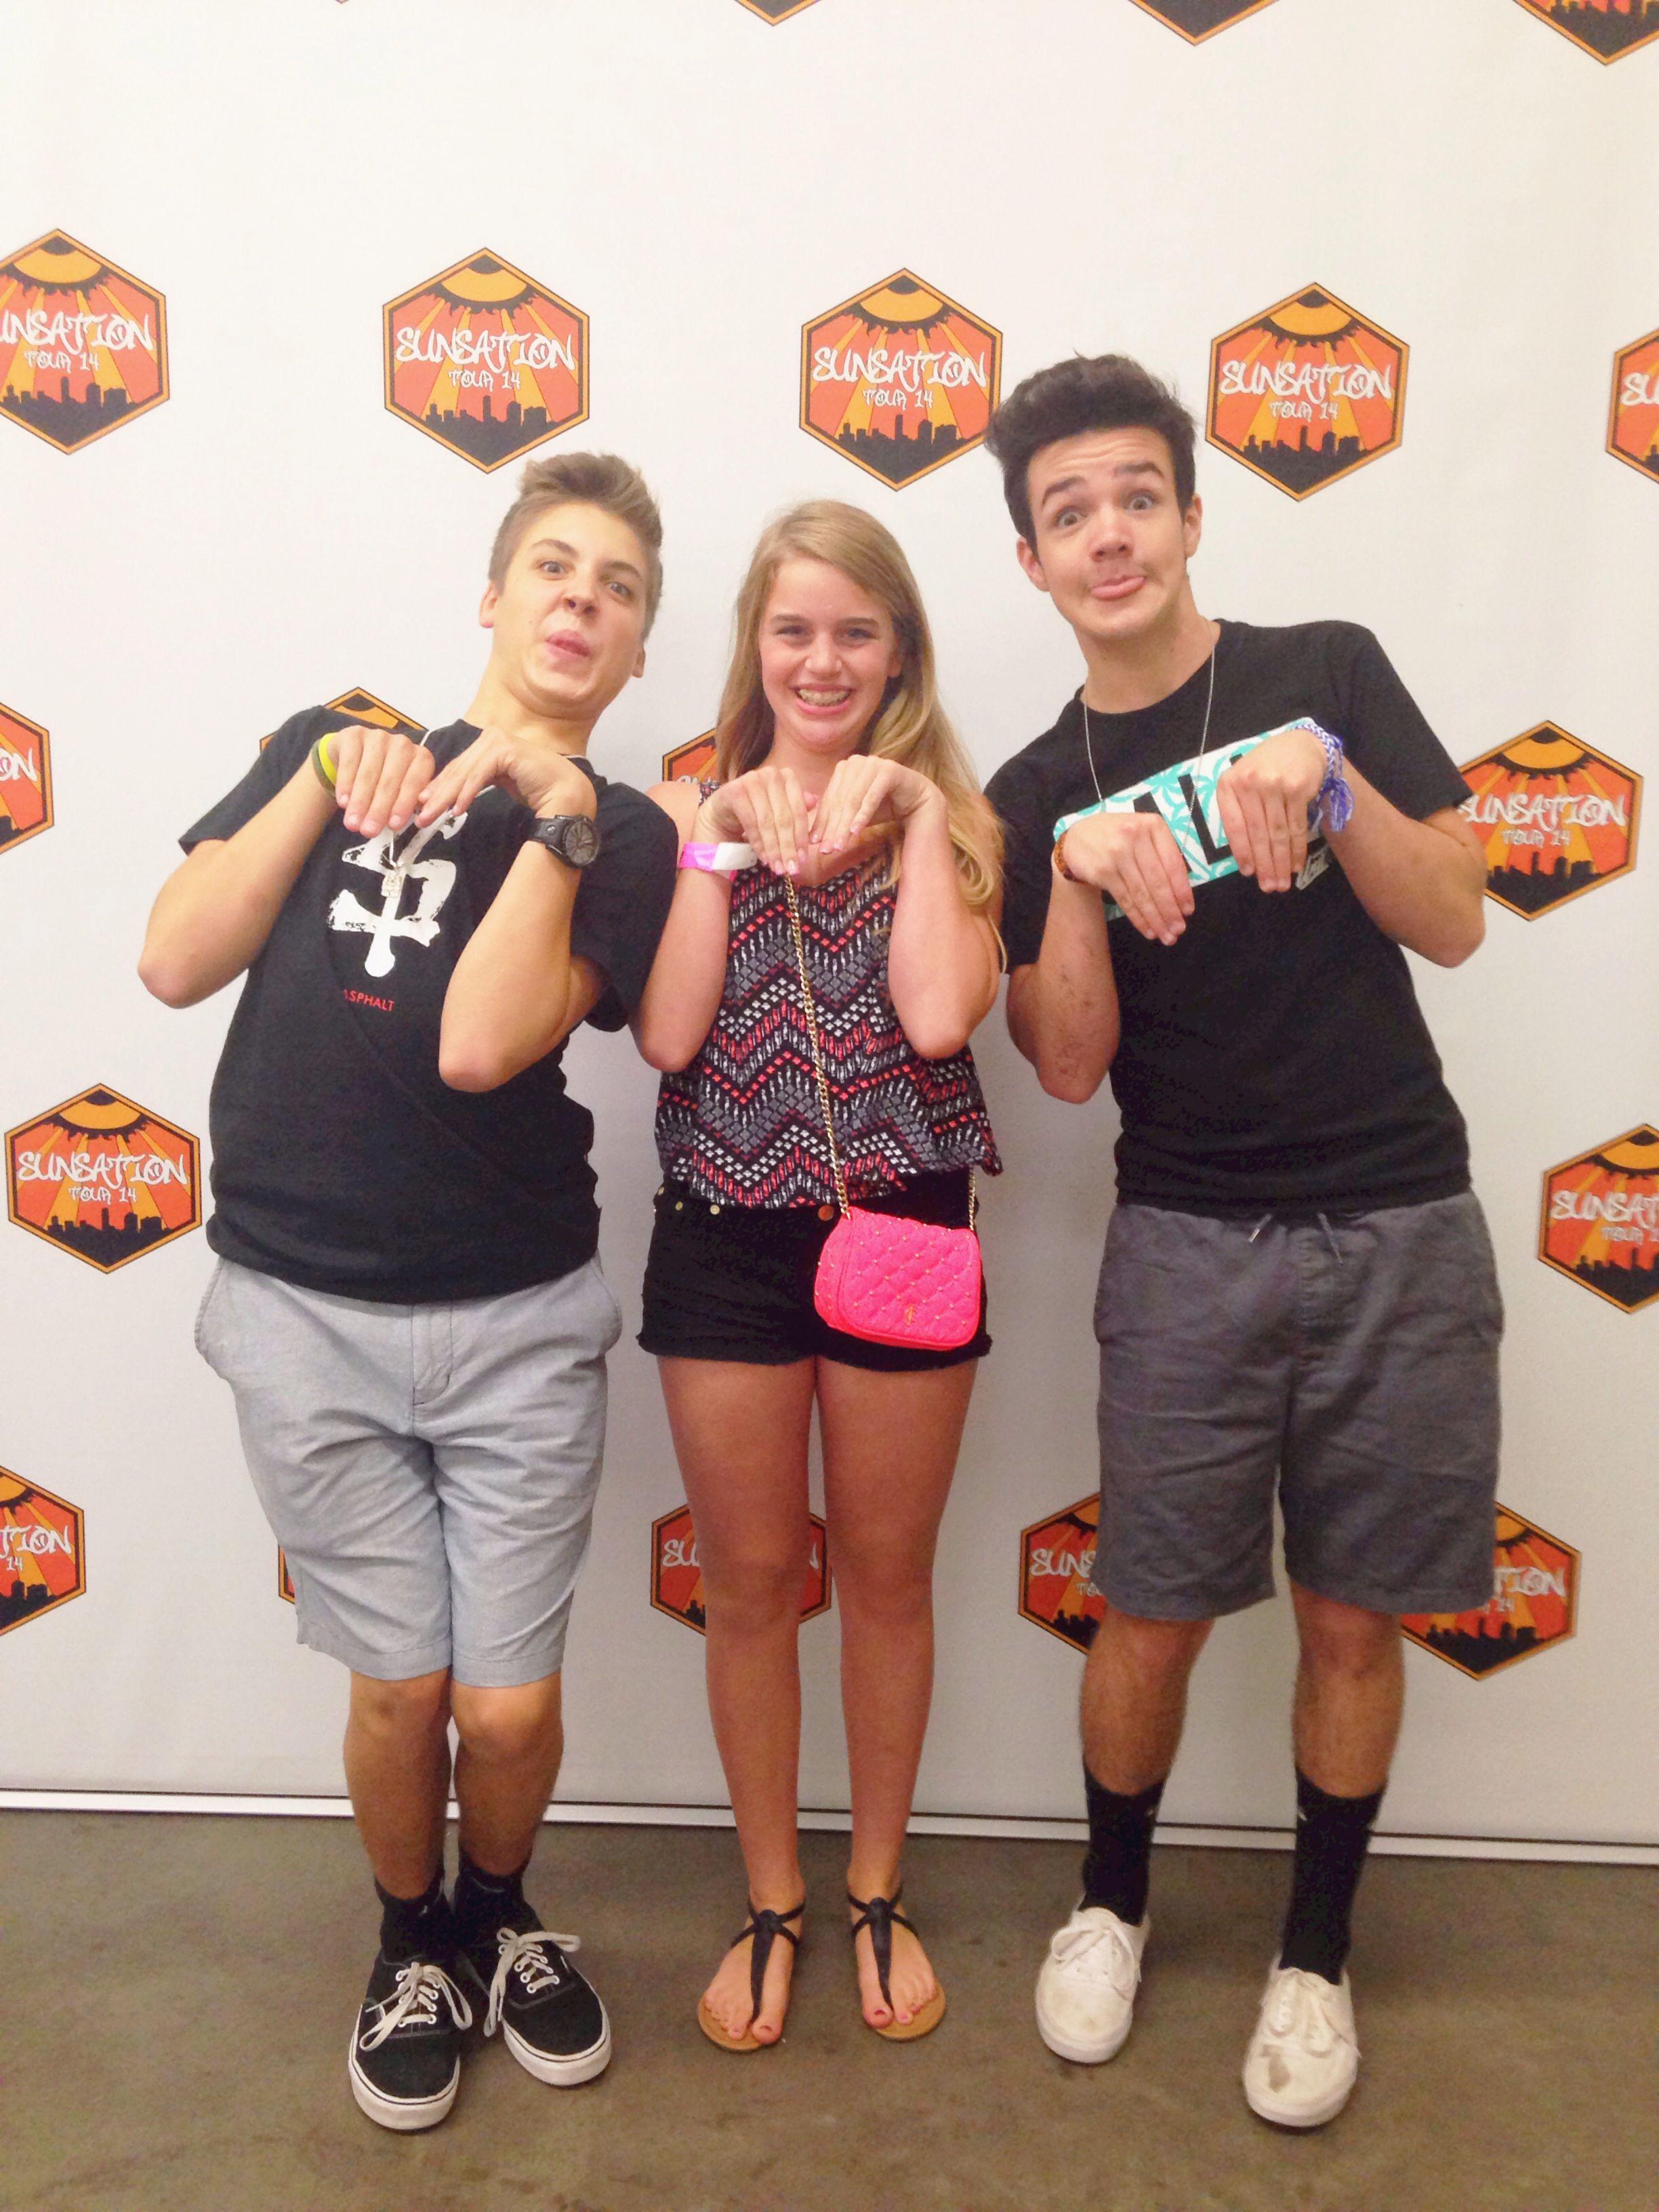 meet and greet ideas magcon tour